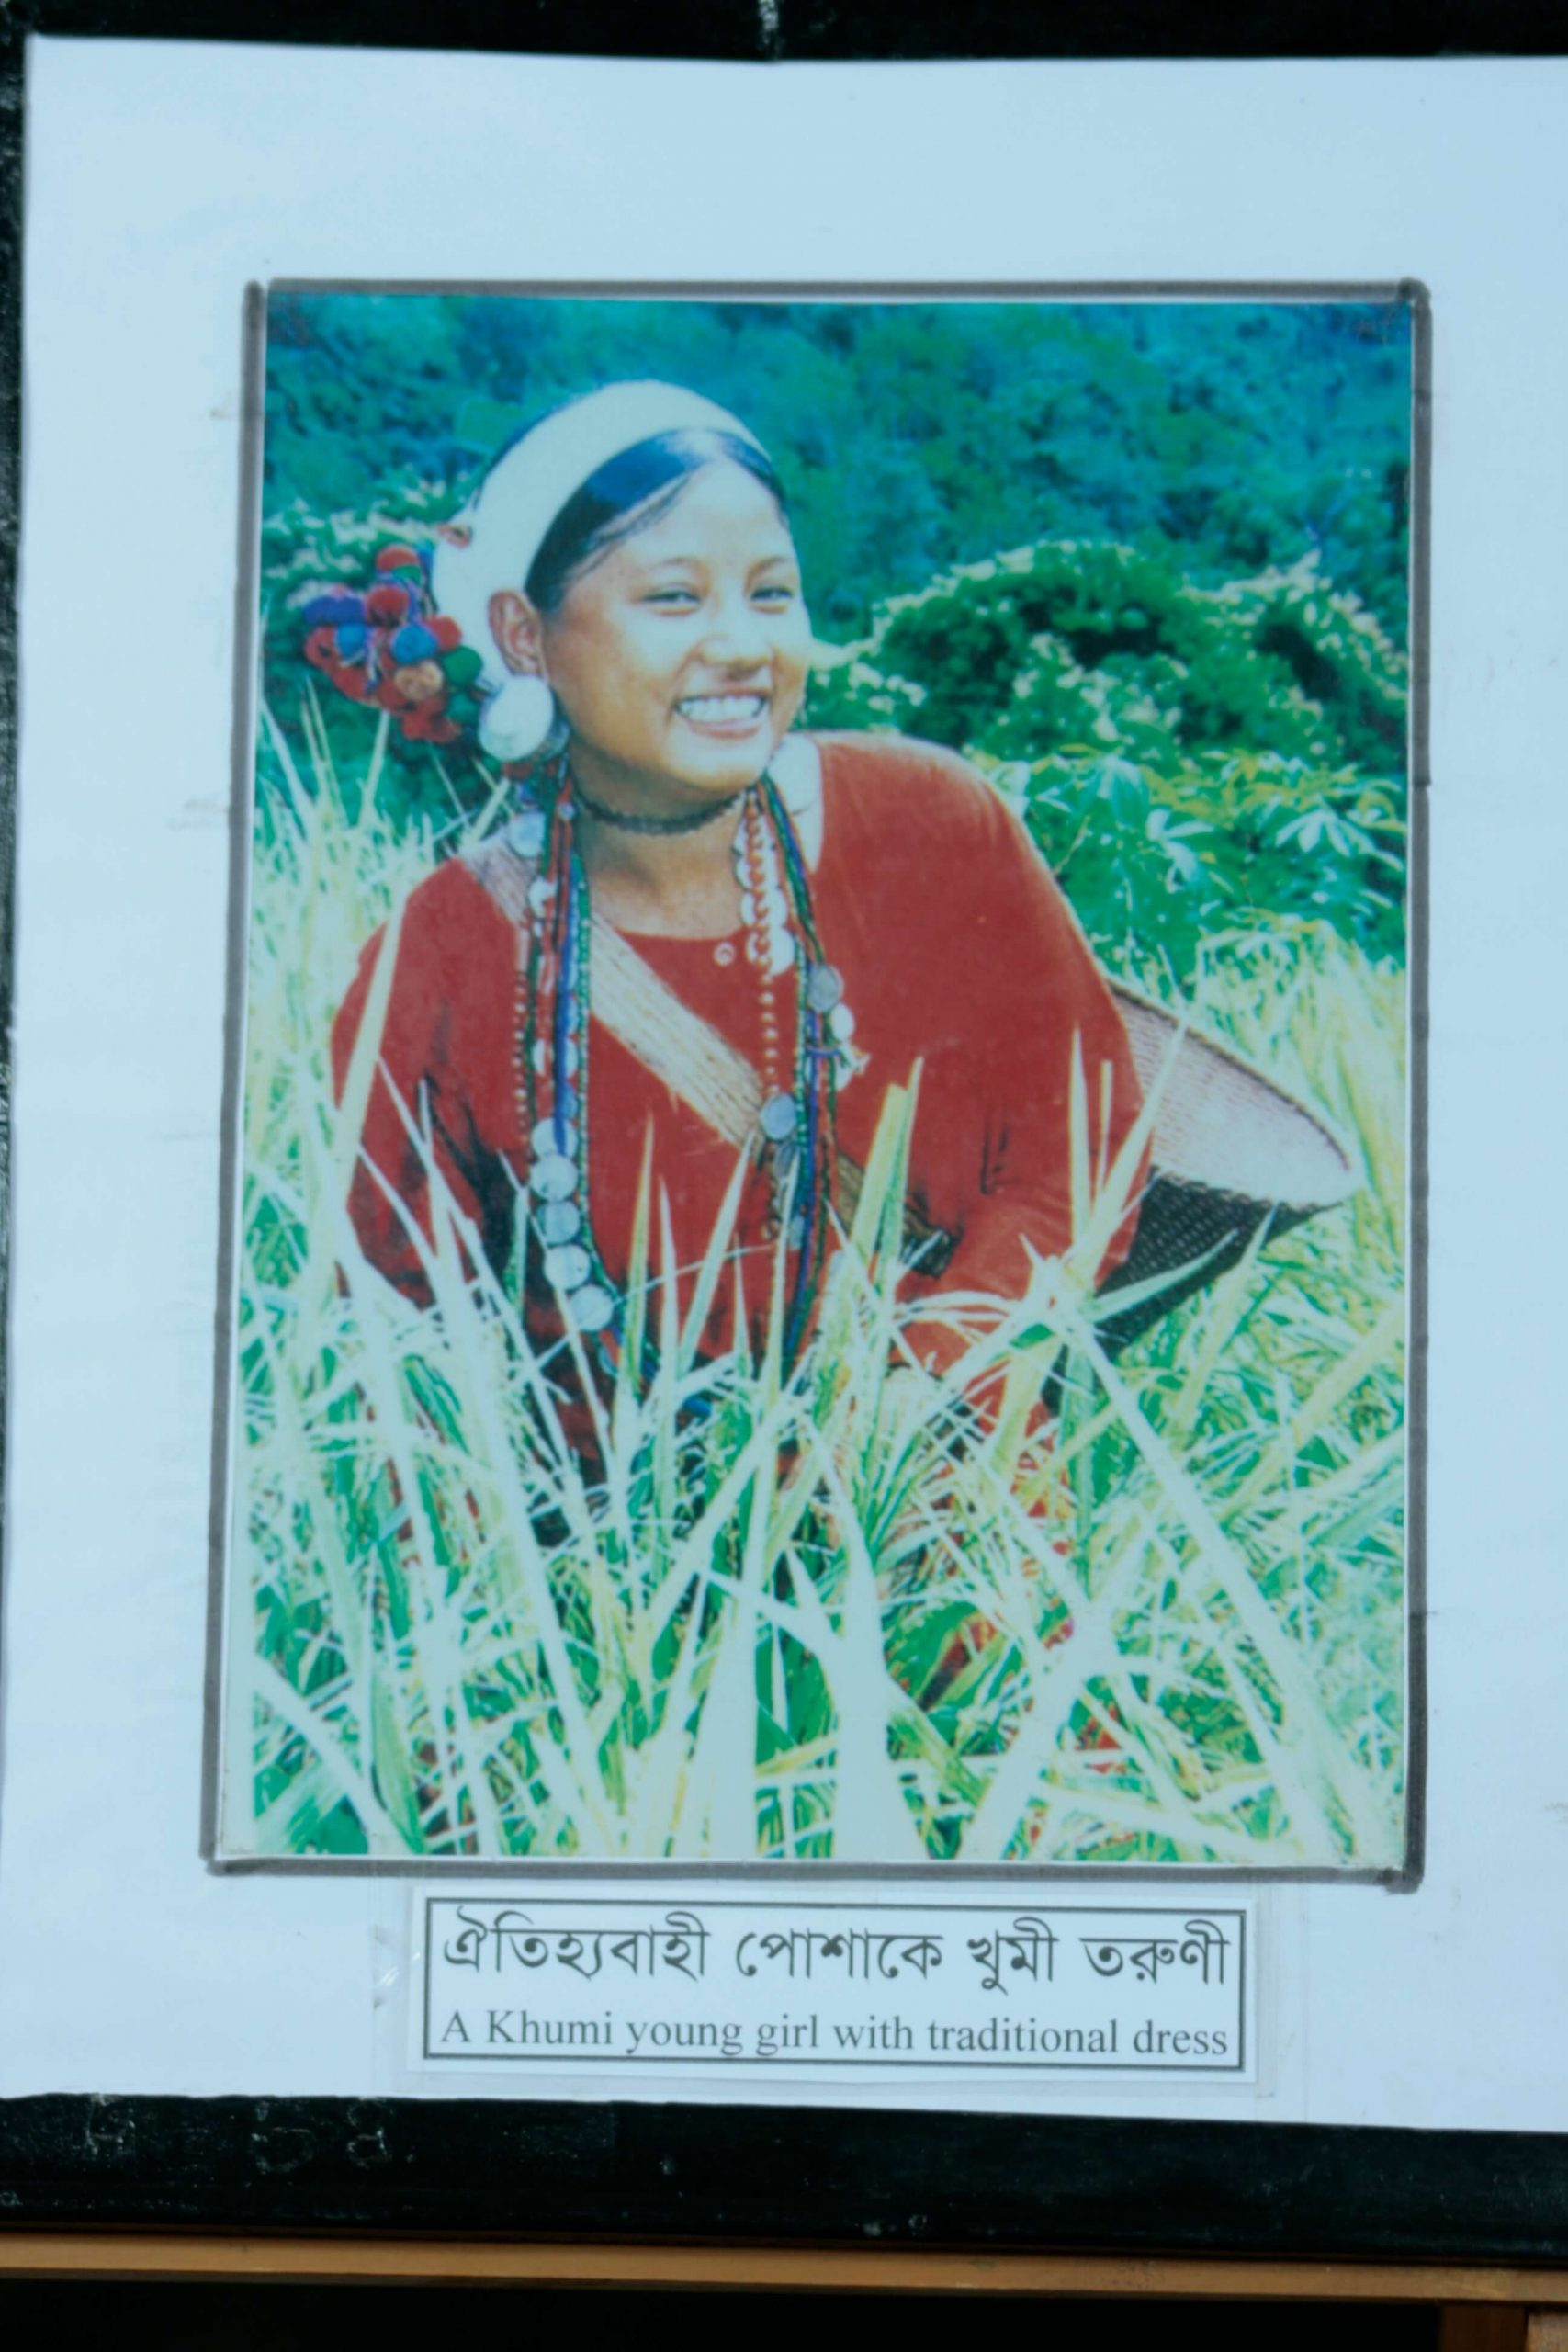 Khumi young girl with traditonal dress